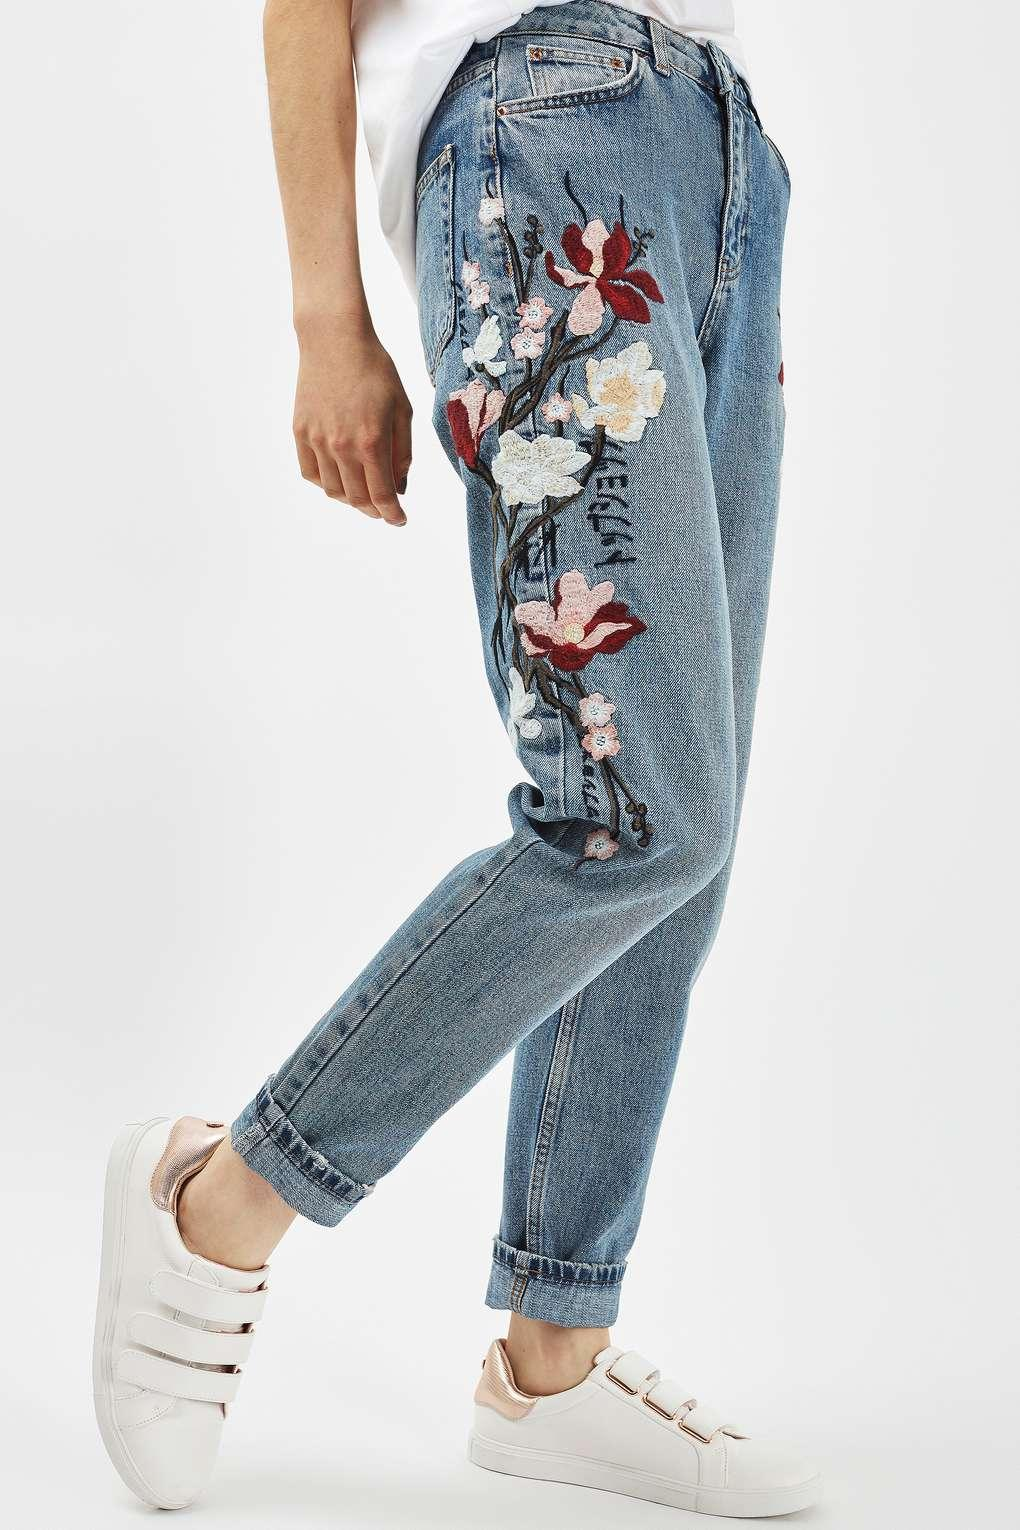 Lyst - Topshop Moto Floral Embroidered Mom Jeans in Blue